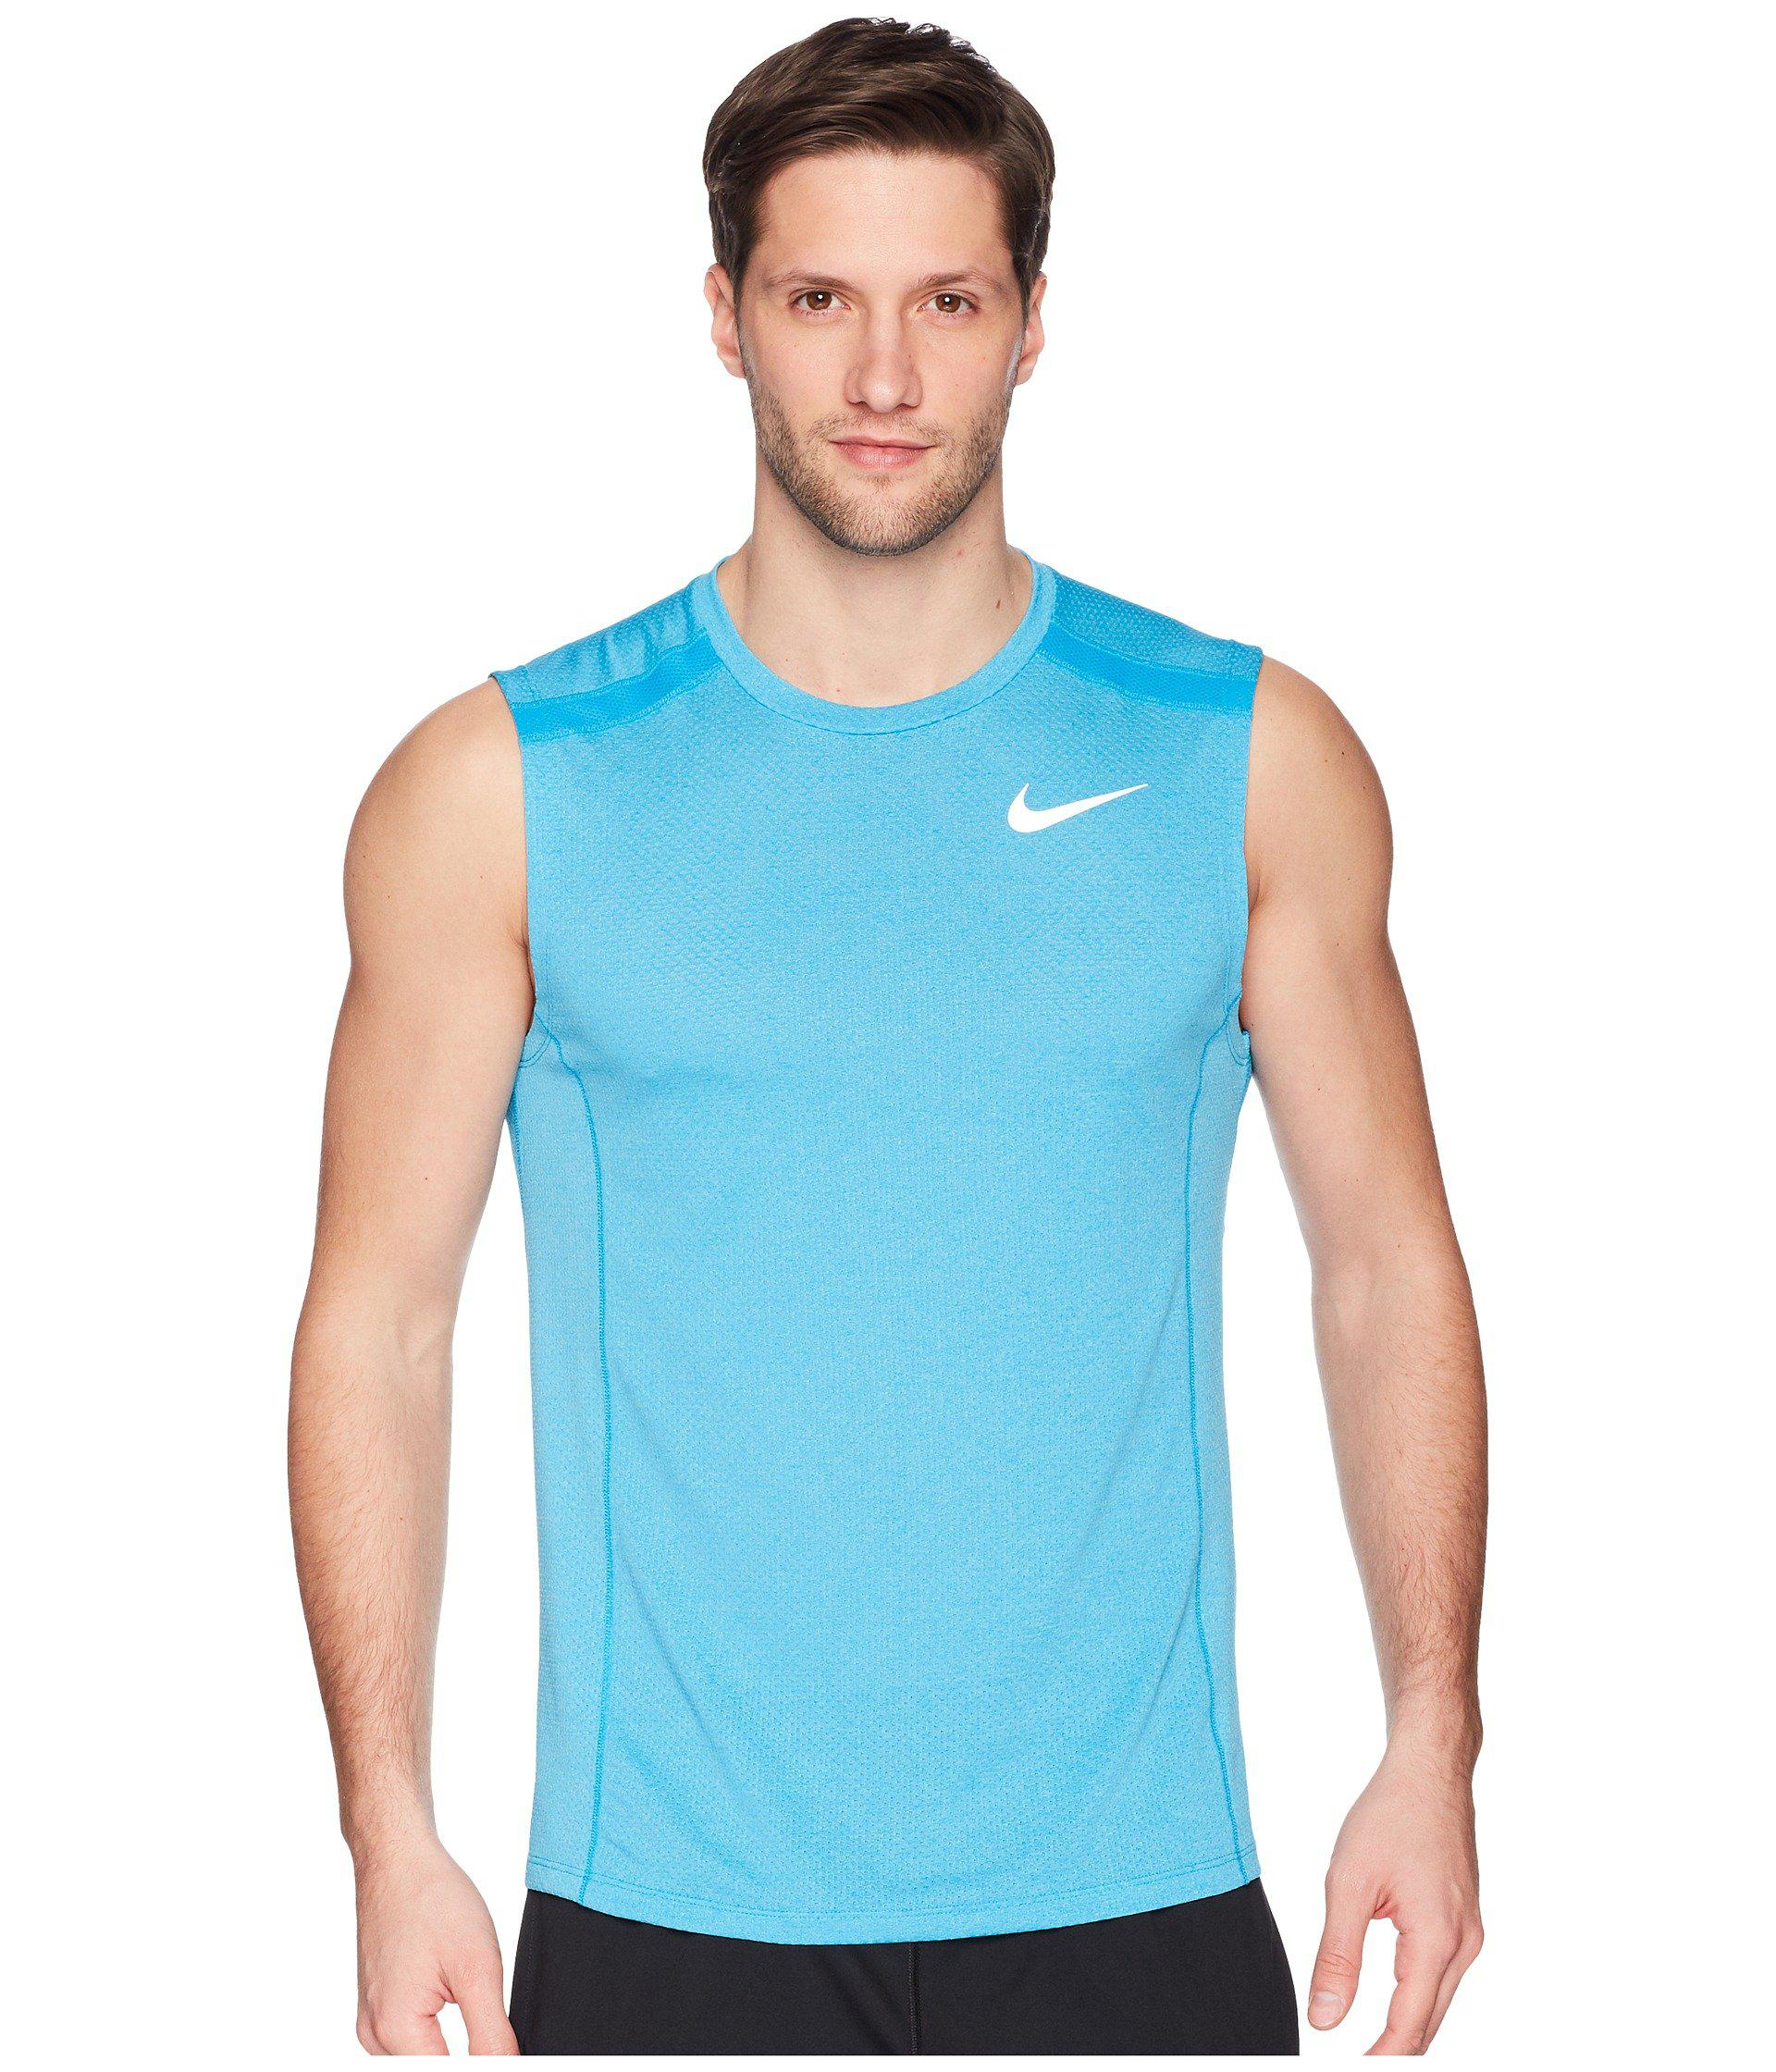 30bfa56aba7a21 Lyst - Nike Breathe Cool Miler Top Sleeveless in Blue for Men - Save 17%